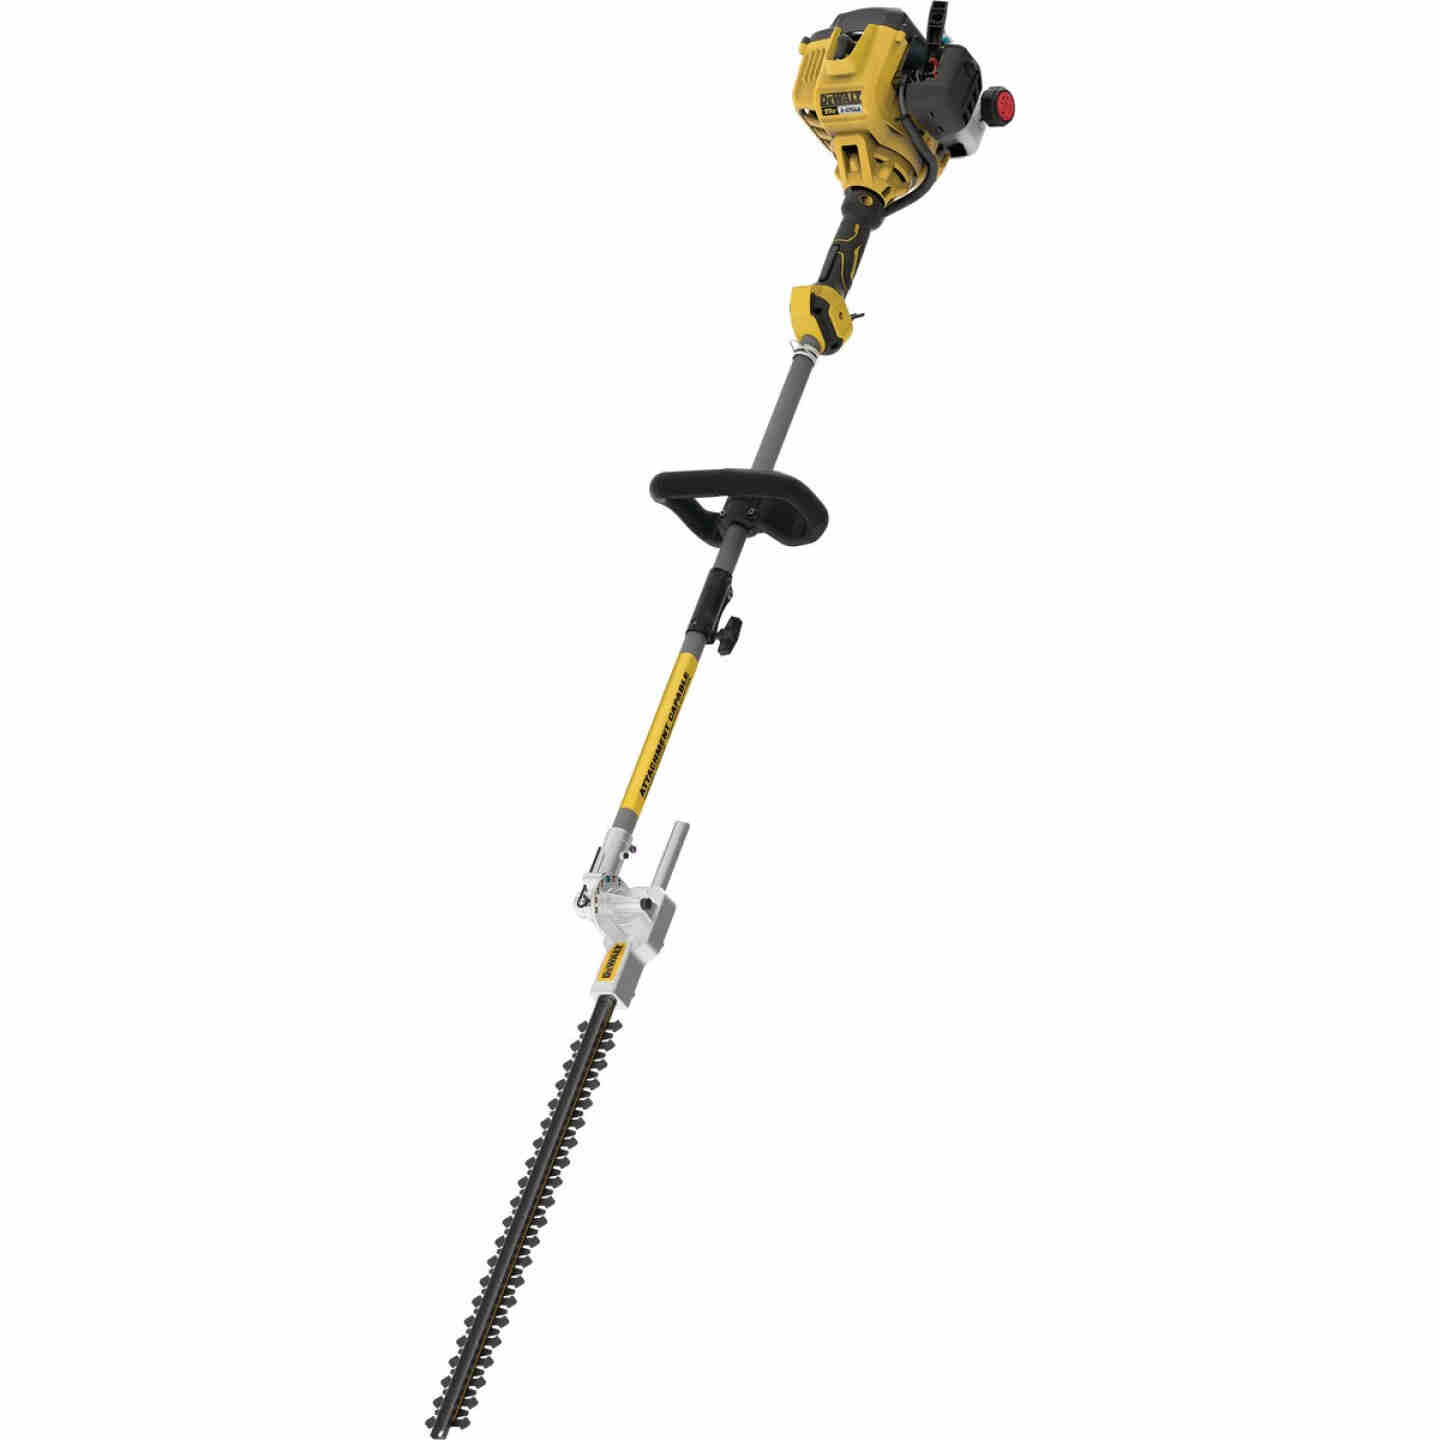 DeWalt Trimmer Plus 22 In. 27cc 2-Cycle Straight Shaft Pole Hedger Image 1